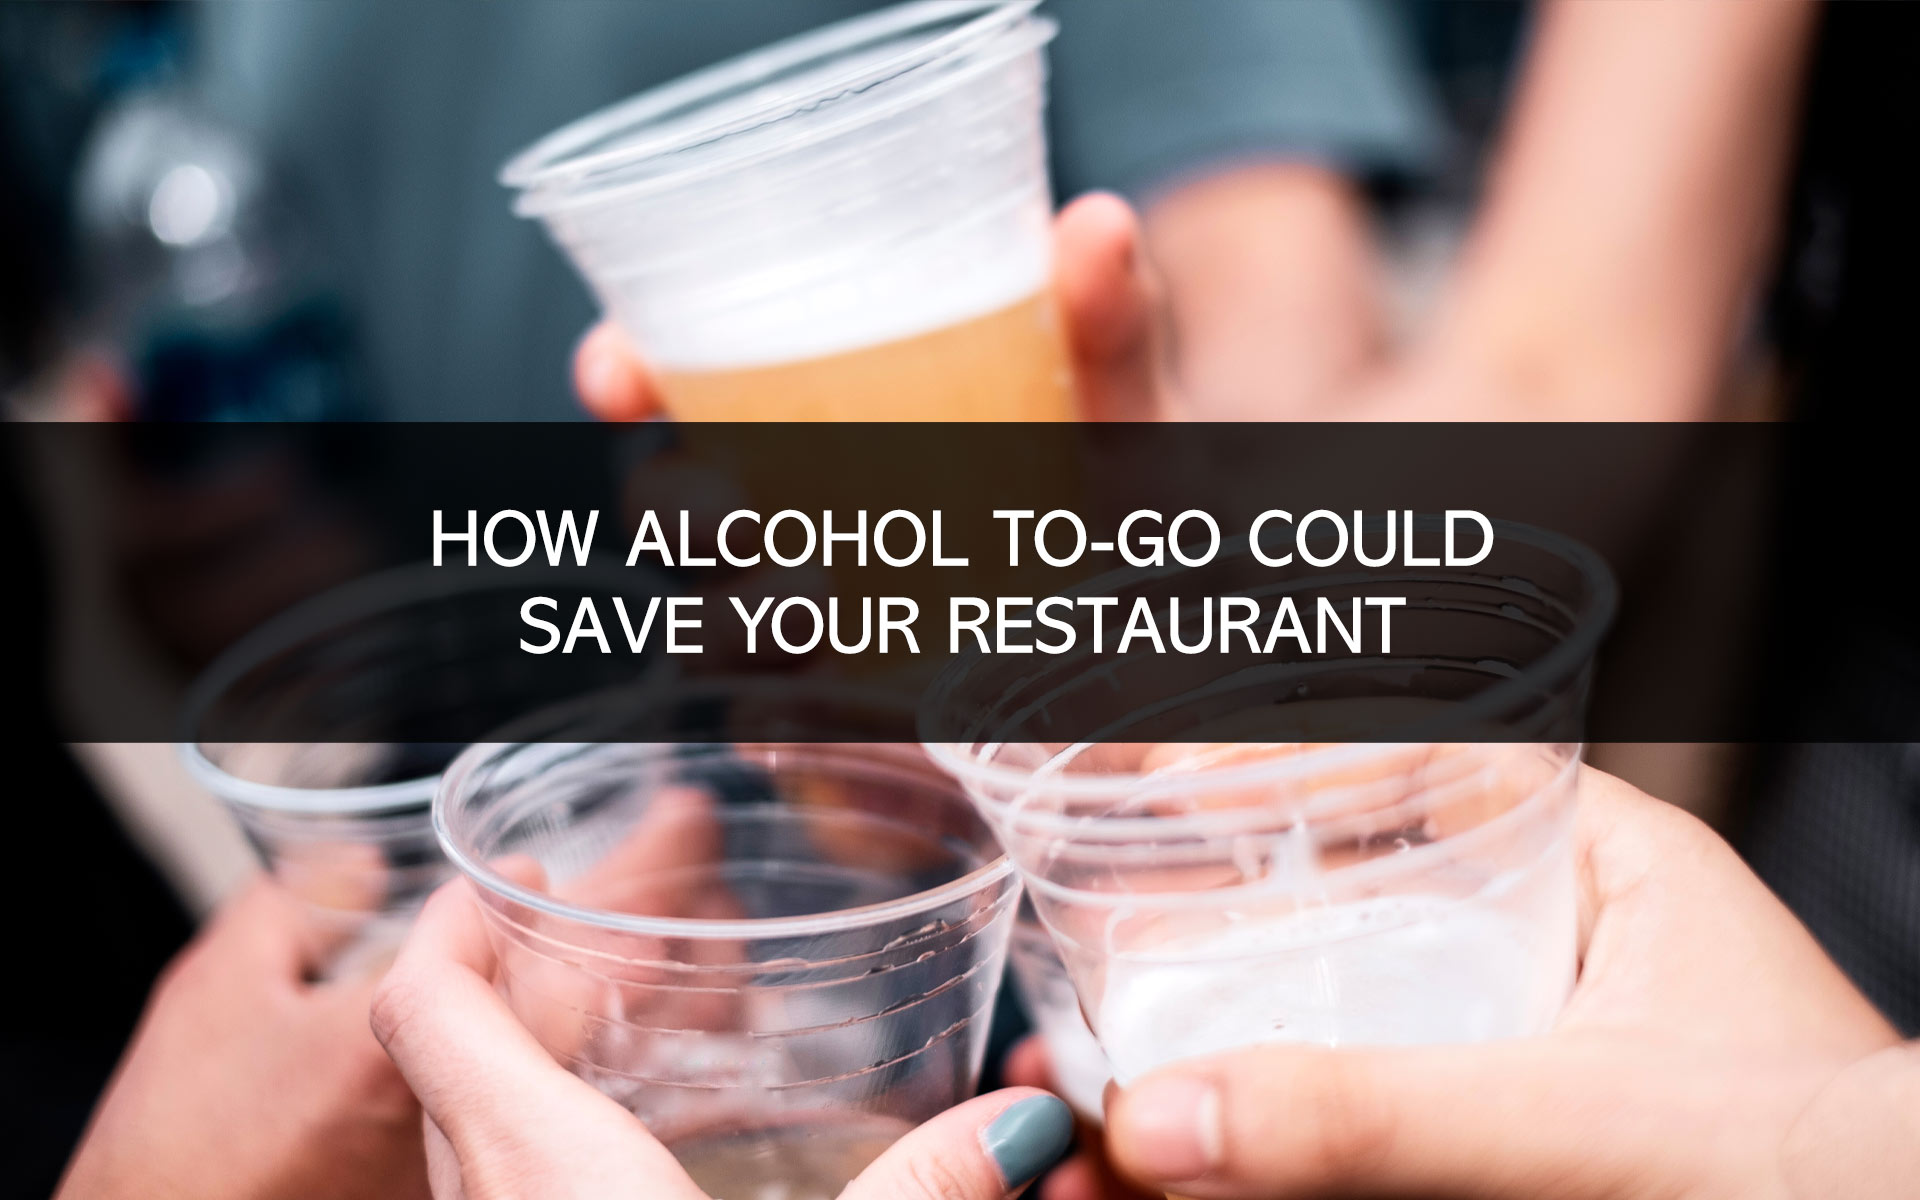 How Alcohol To-Go Could Save Your Restaurant